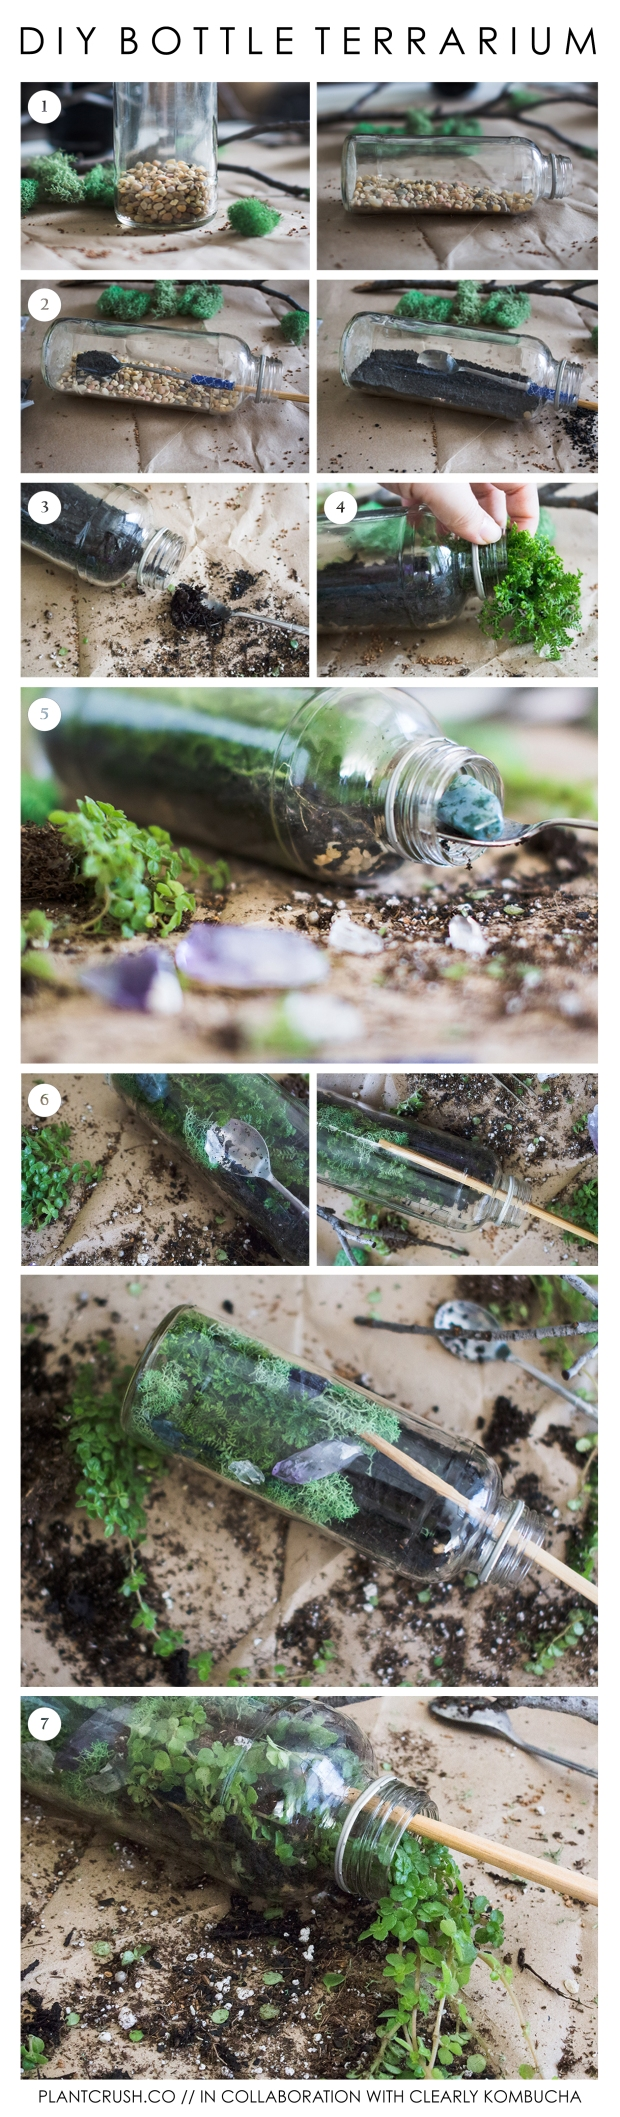 Terrarium Bottle DIY | plantcrush.co